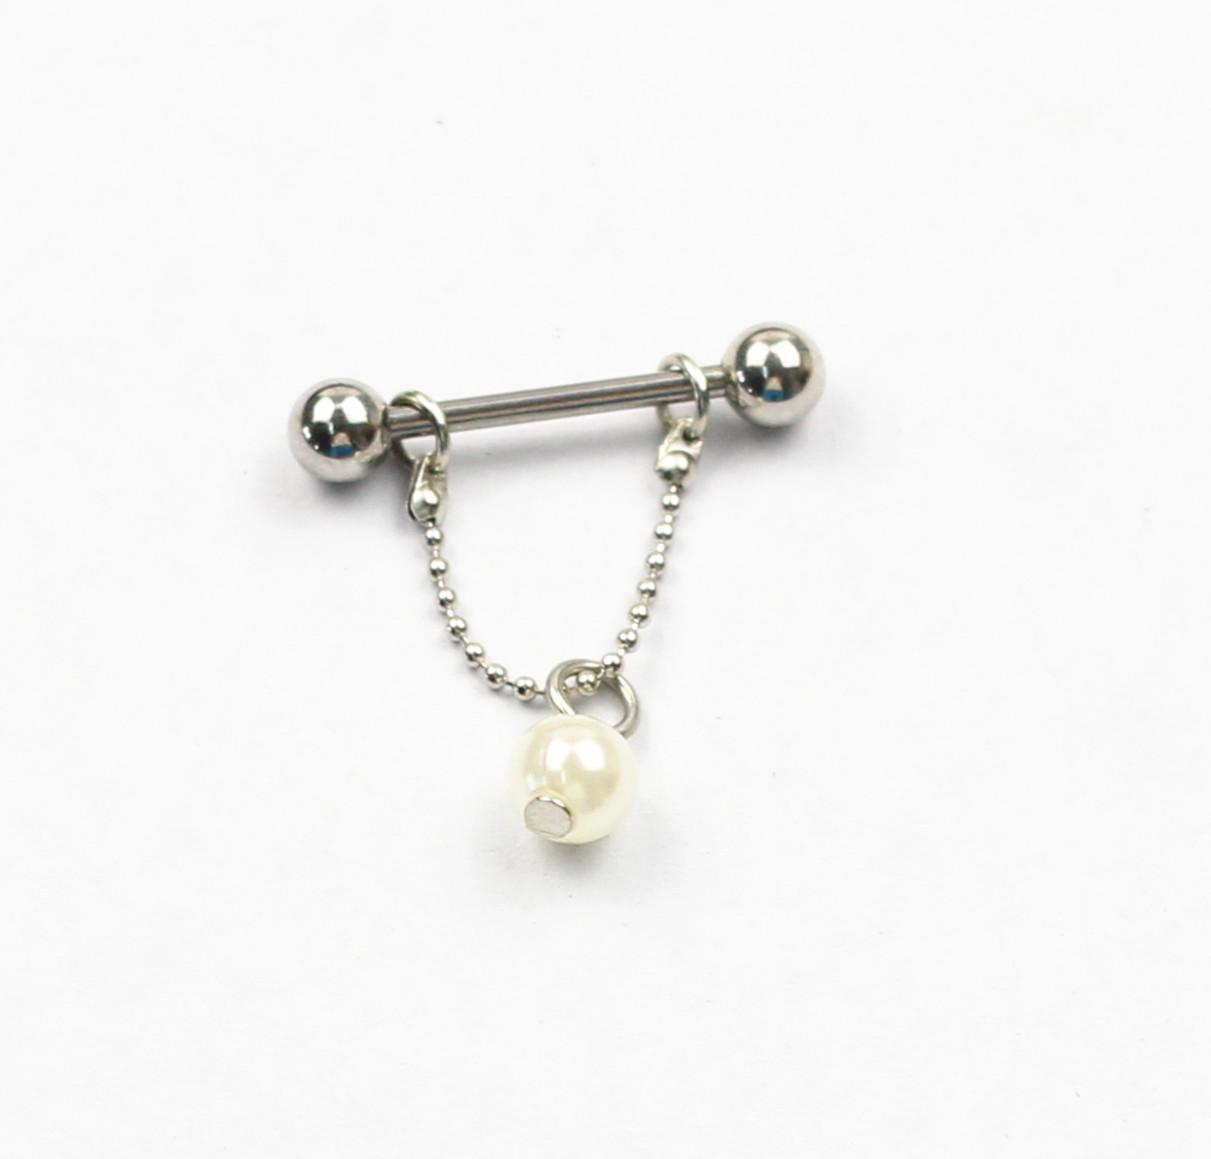 Cheap Stainless Steel Nipple Rings